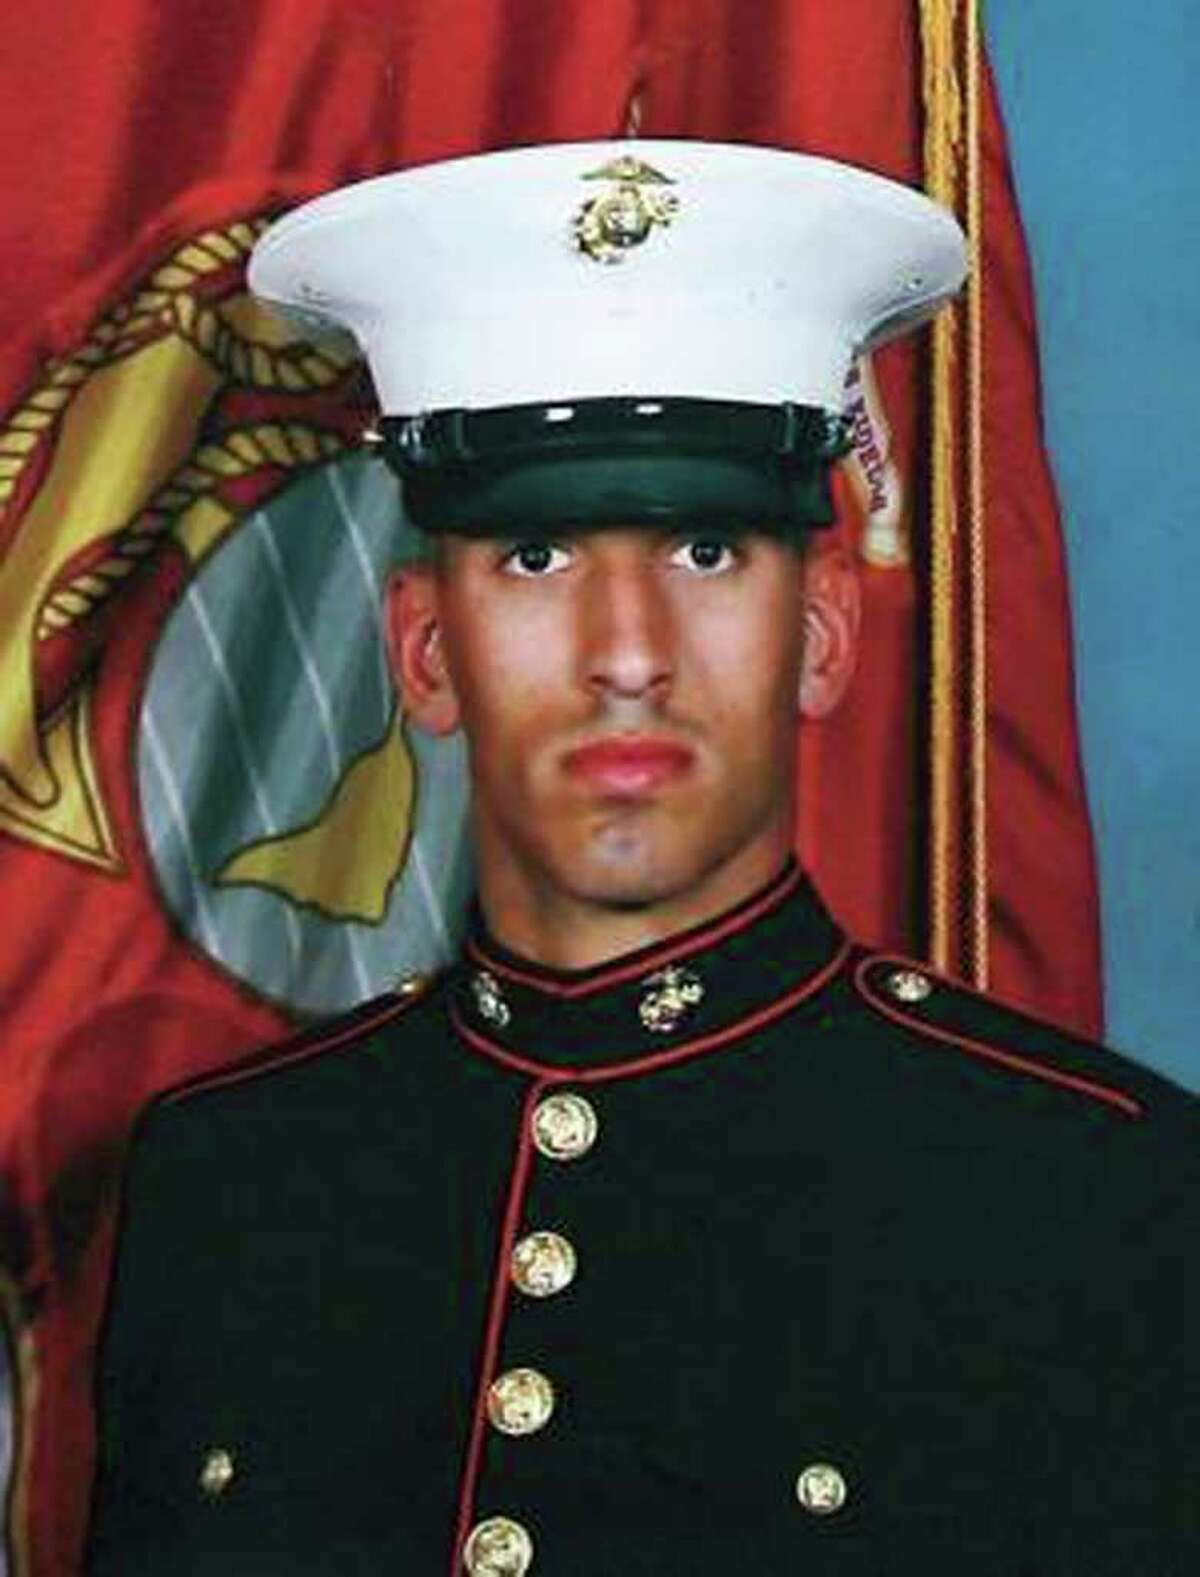 Lance Cpl. John F. Farias, 20, of New Braunfels, Texas, died June 28 while conducting combat operations in Helmand province, Afghanistan. He was assigned to 1st Battalion, 5th Marine Regiment, 1st Marine Division, I Marine Expeditionary Force, Camp Pendleton, Calif.